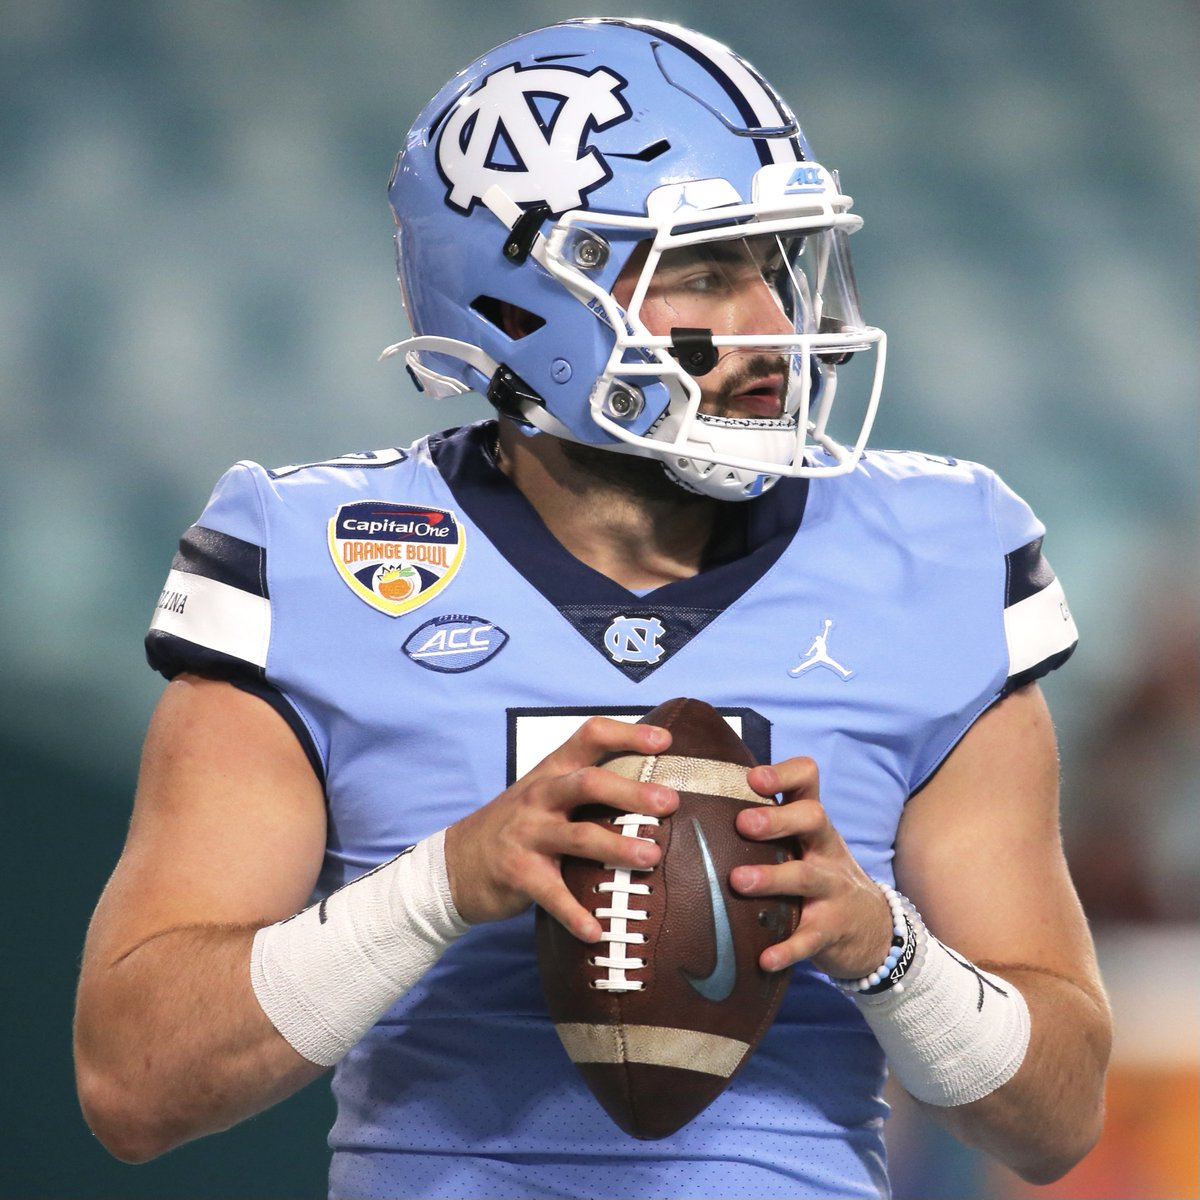 Since 2019, Sam Howell has... 🔹 86 passing TDs (1st) 🔹 9,044 passing yards (1st) 🔹 71 big time throws (1st)